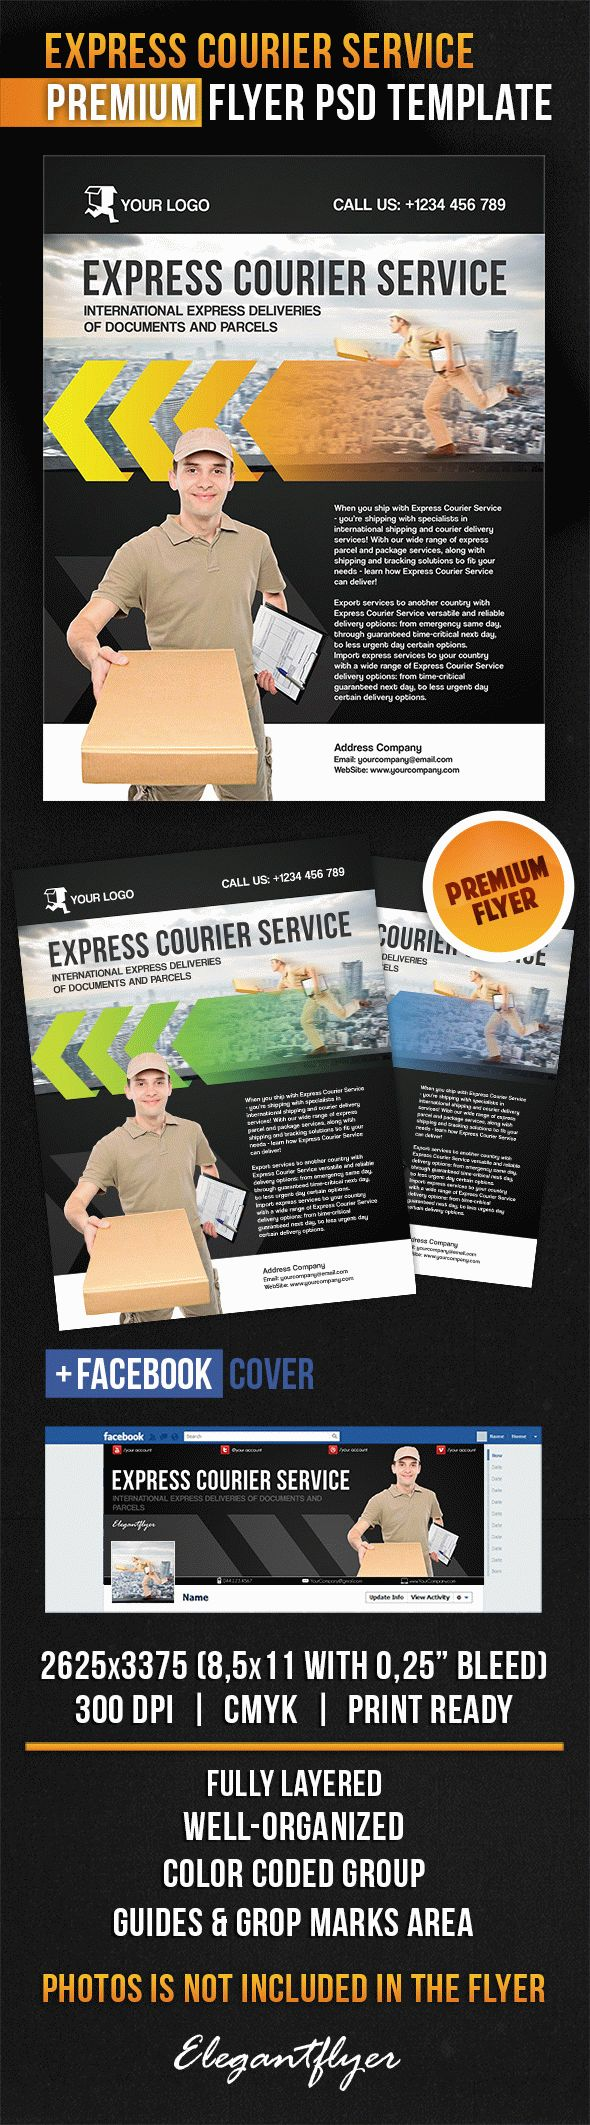 Express Courier Service – Flyer PSD Template